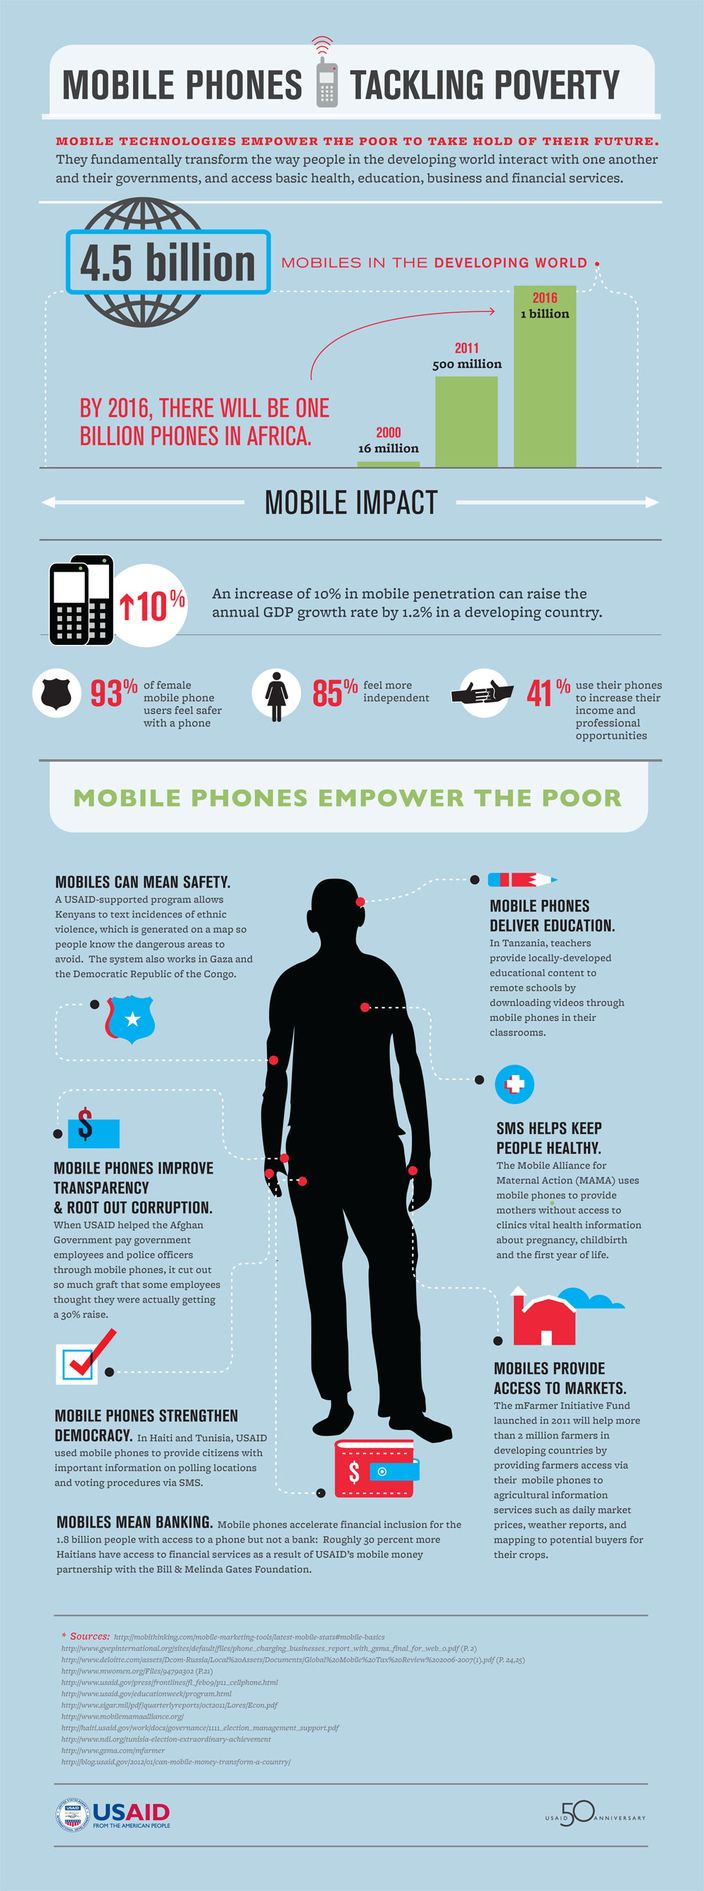 USAID's pro-mobile phone infographic